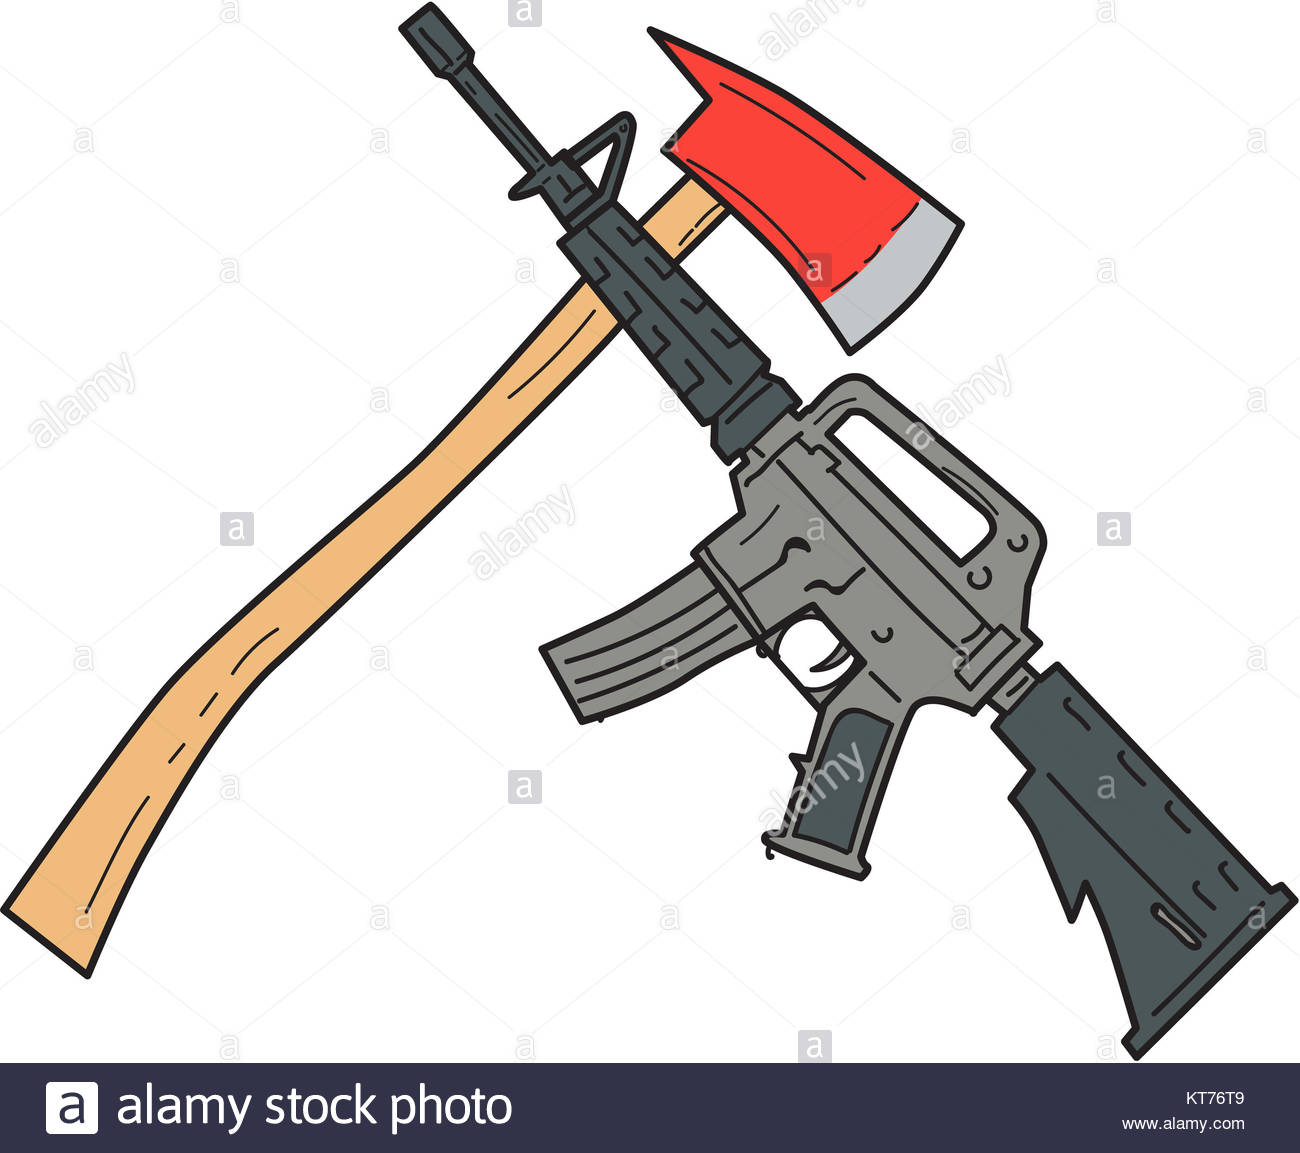 1300x1153 Crossed Fire Ax And M4 Carbine Rifle Drawing Stock Photo